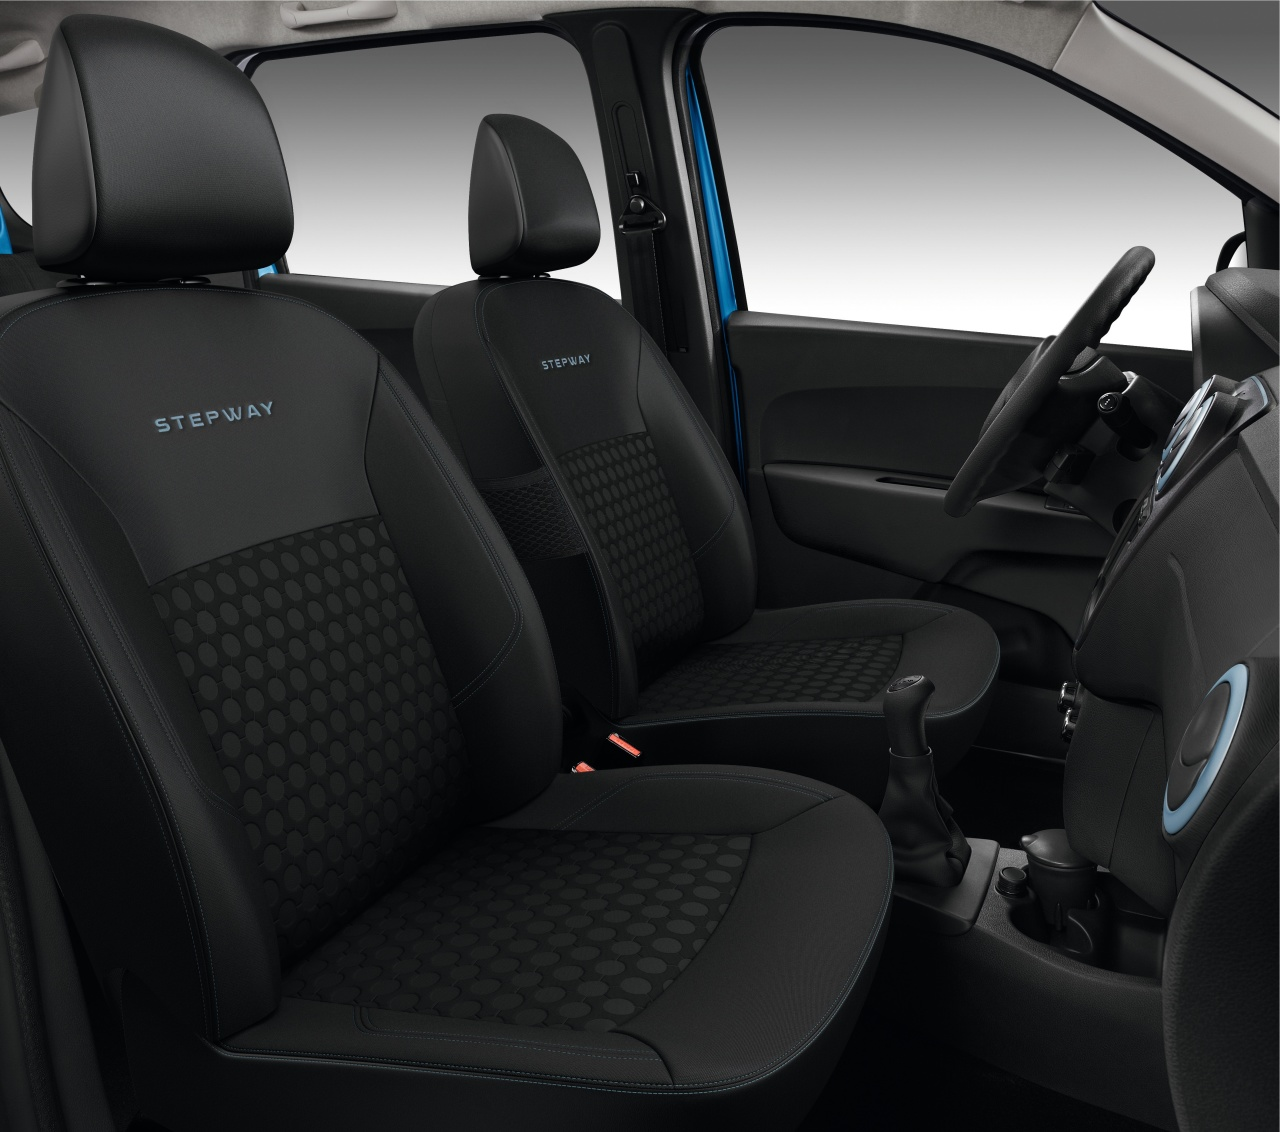 dacia lodgy stepway 7 places pour l 39 aventure photo 1. Black Bedroom Furniture Sets. Home Design Ideas